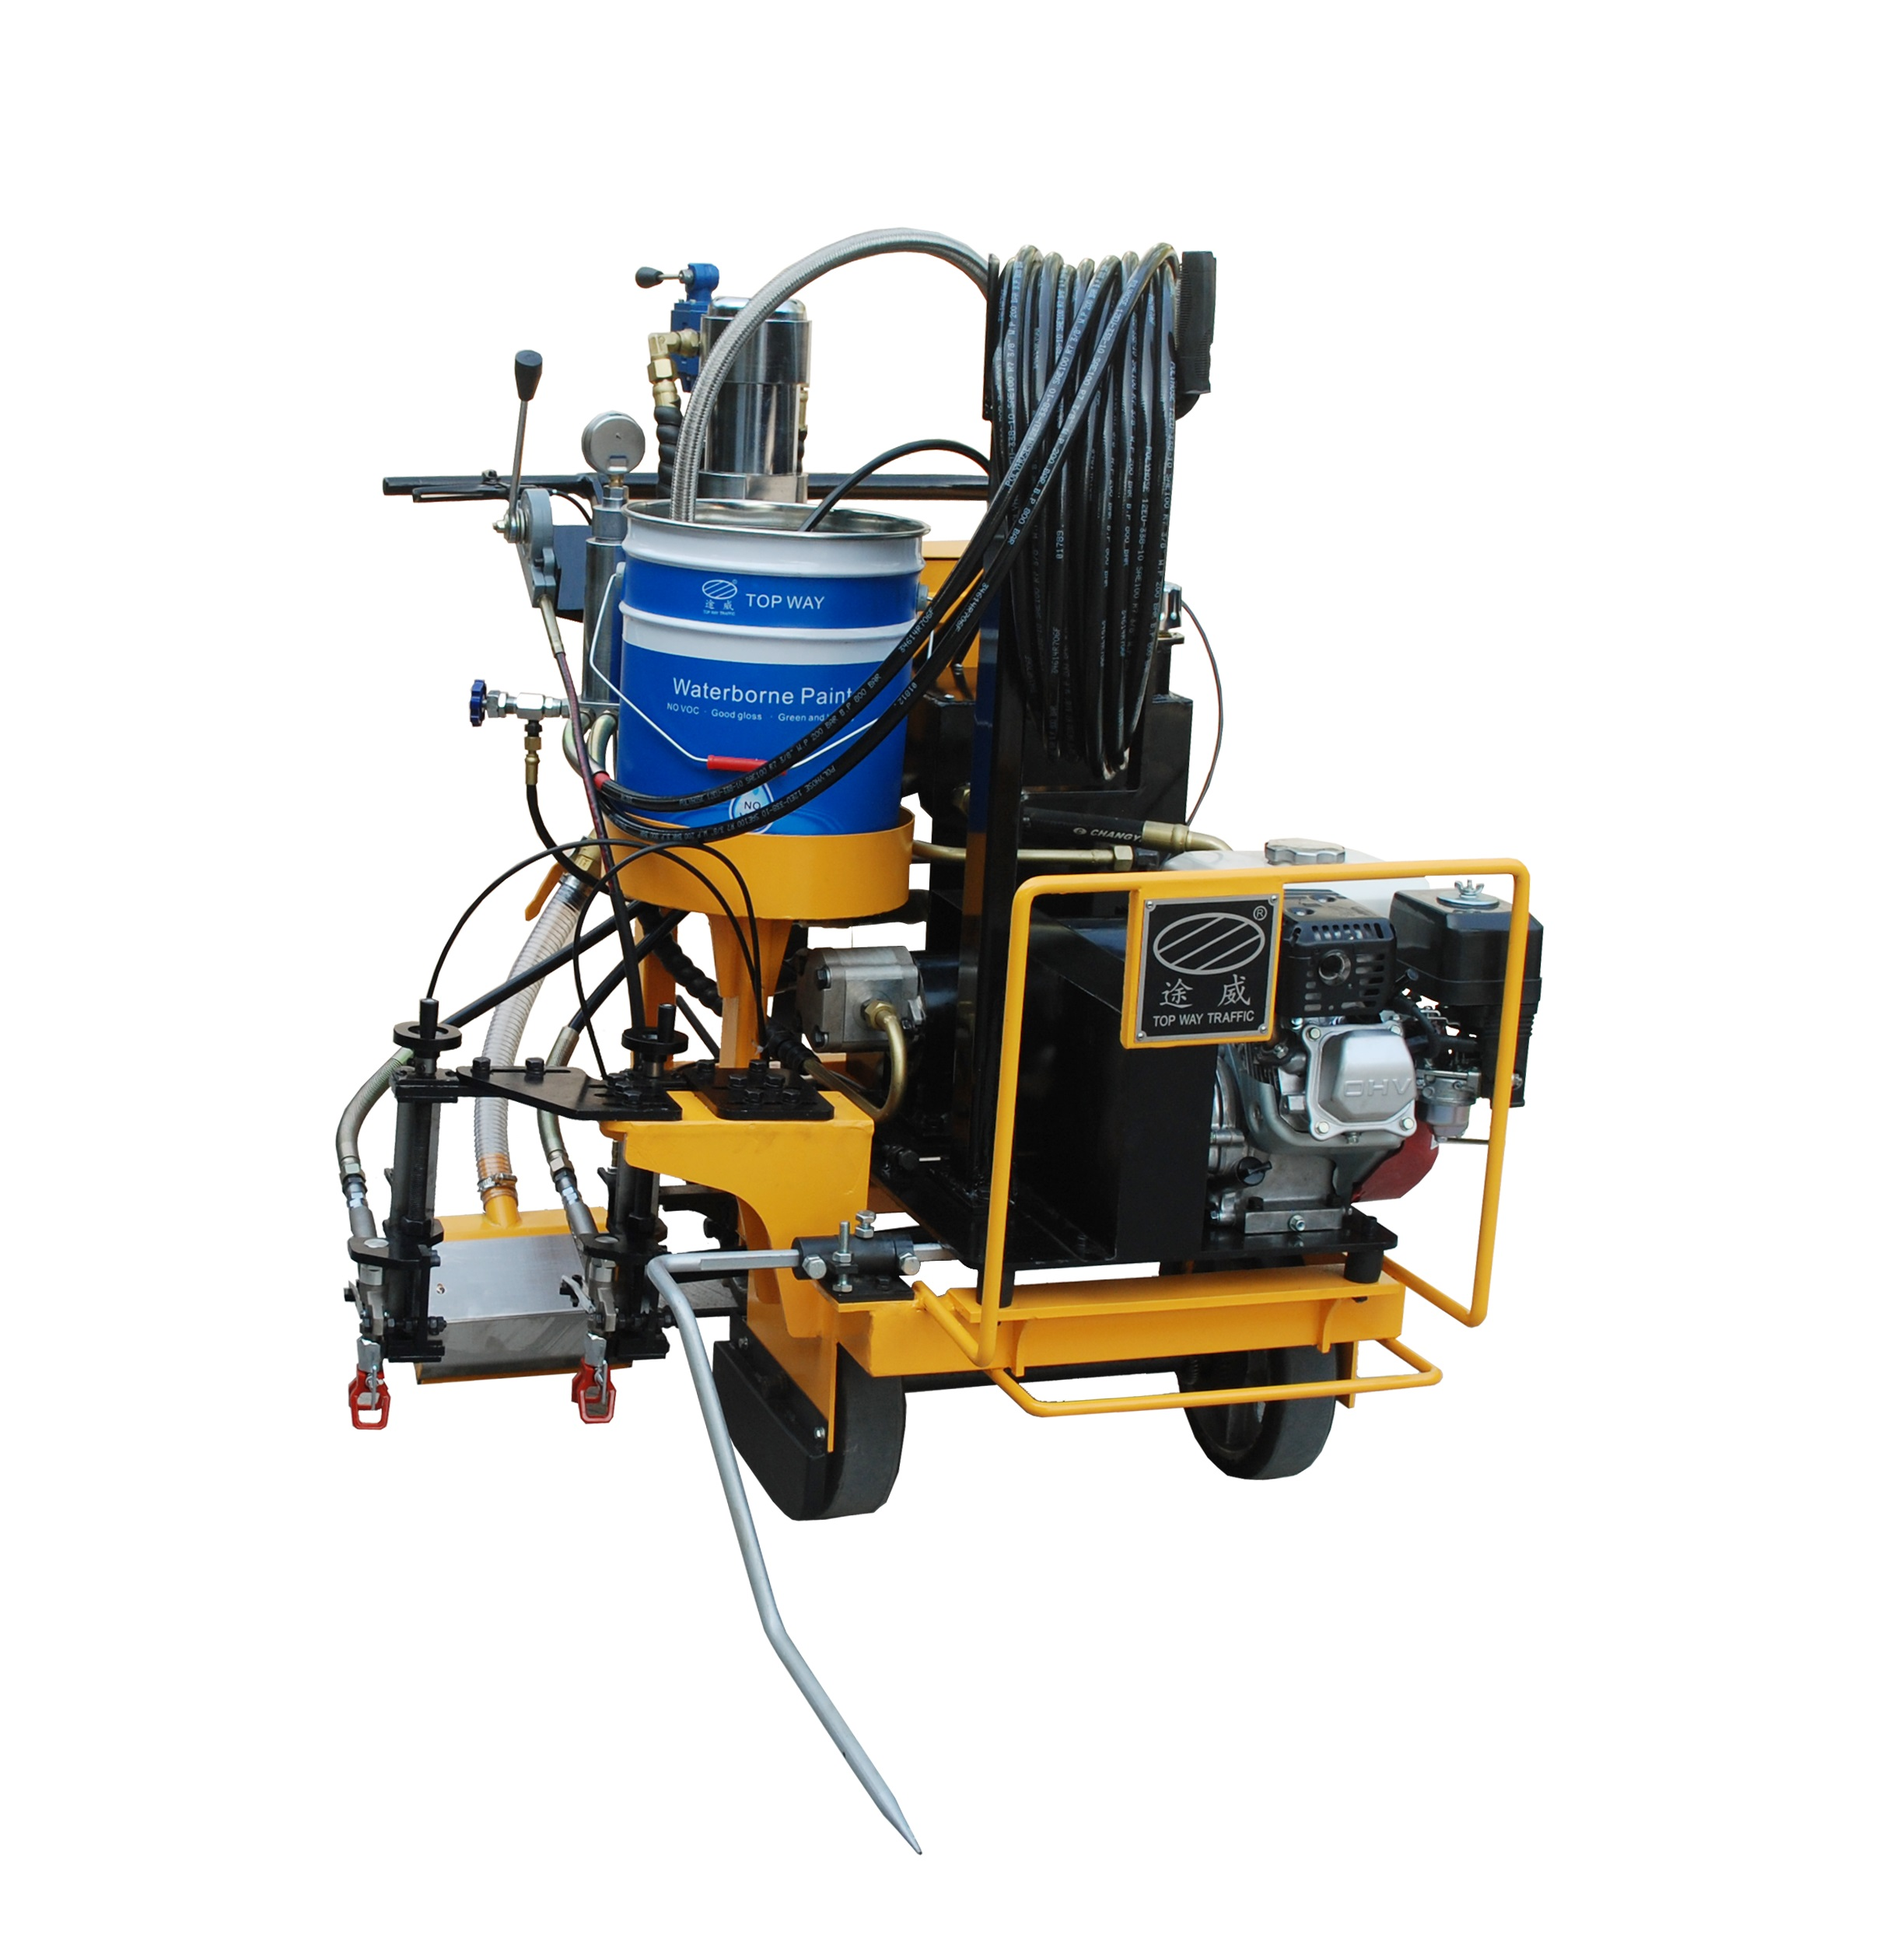 Cold spraying road marking machine Featured Image